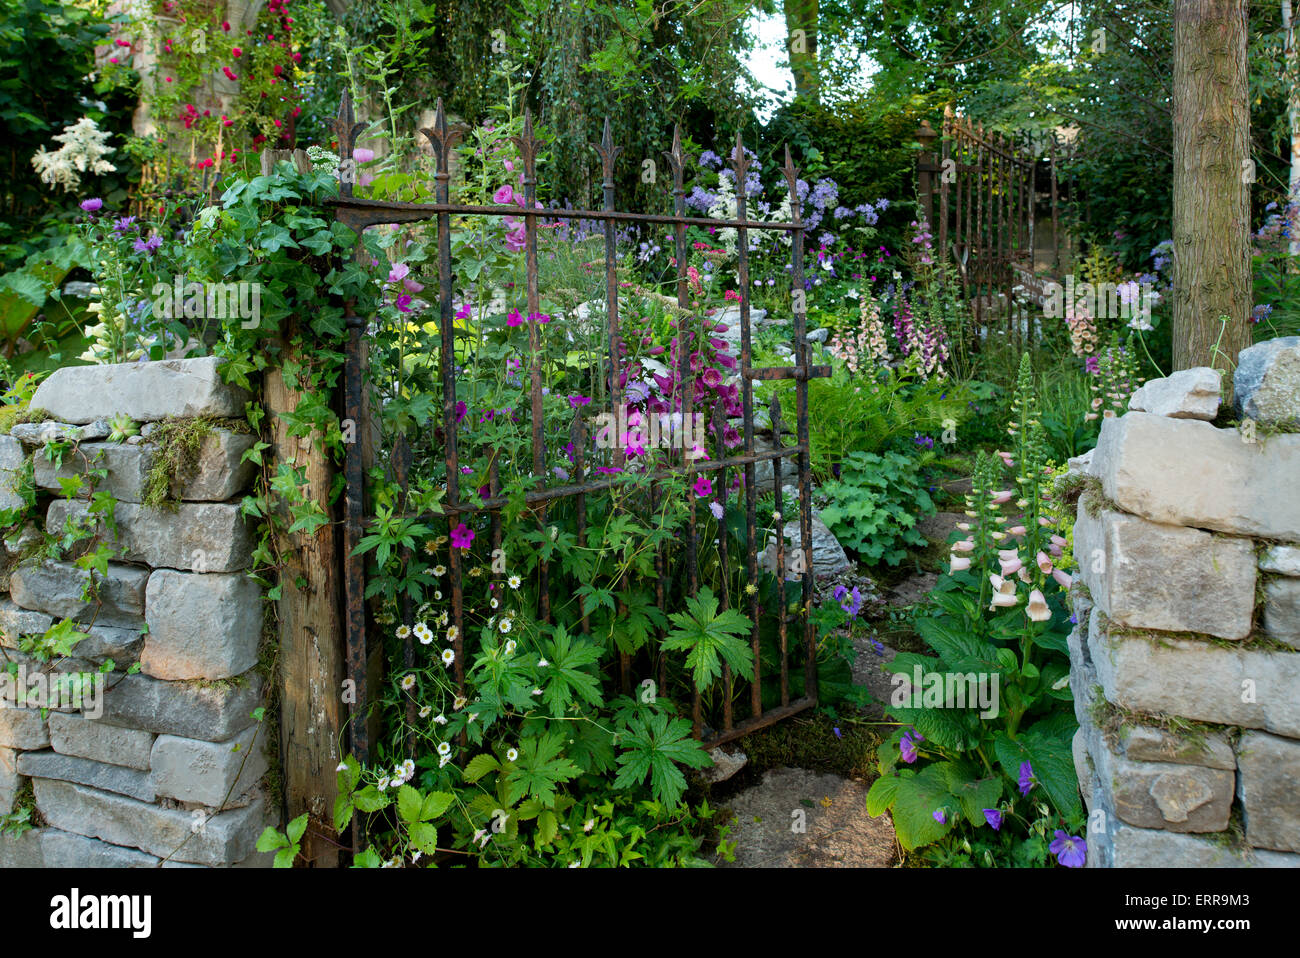 A stone wall and metal gate leading into The Forgotten Folly Garden at The Hampton Court Flower Show, 2014 - Stock Image